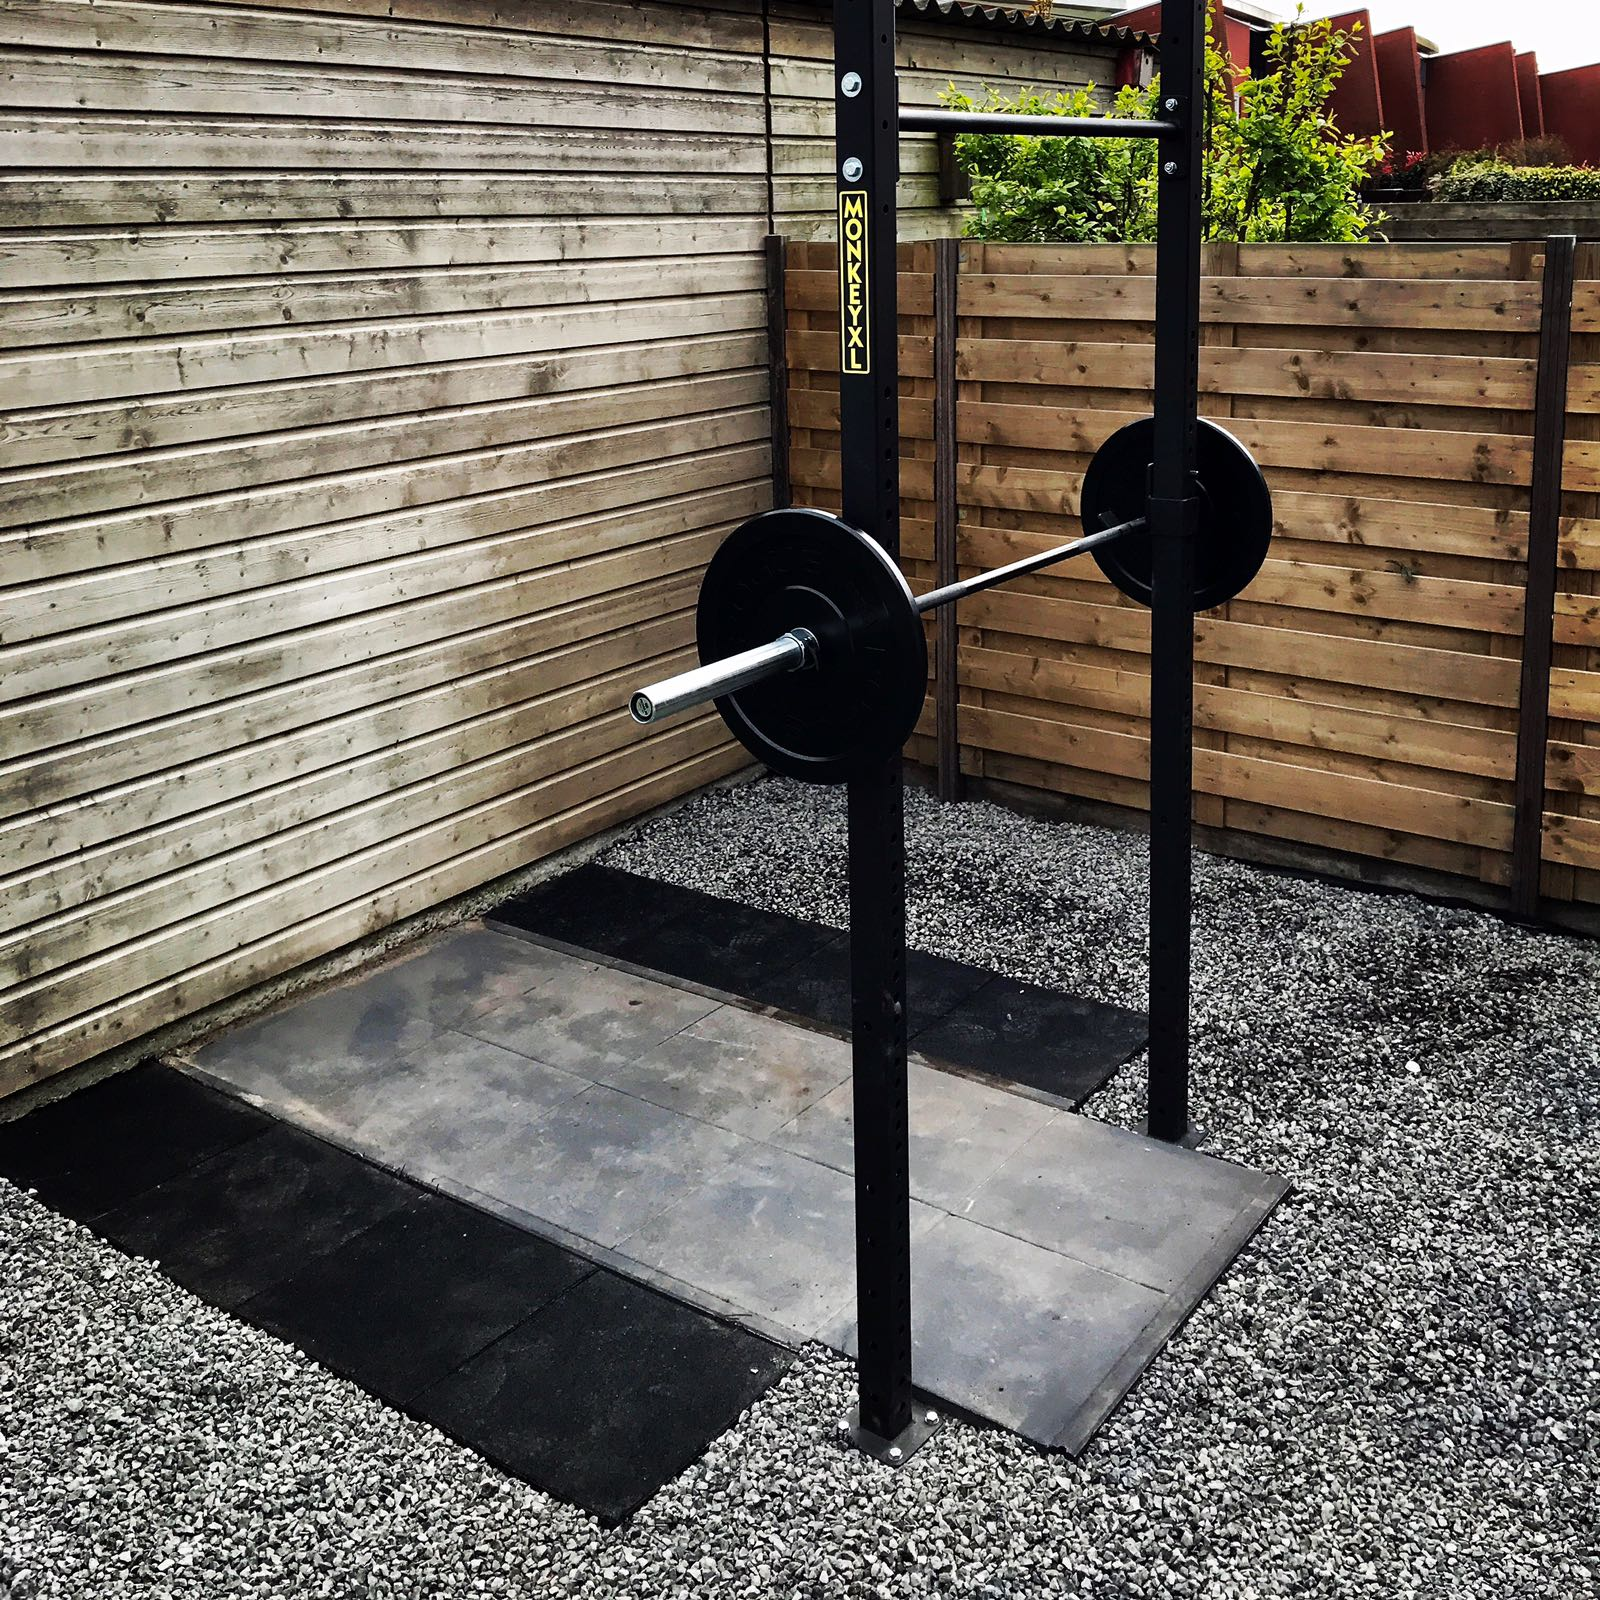 Massive-monkey-pull-up-rack-buiten